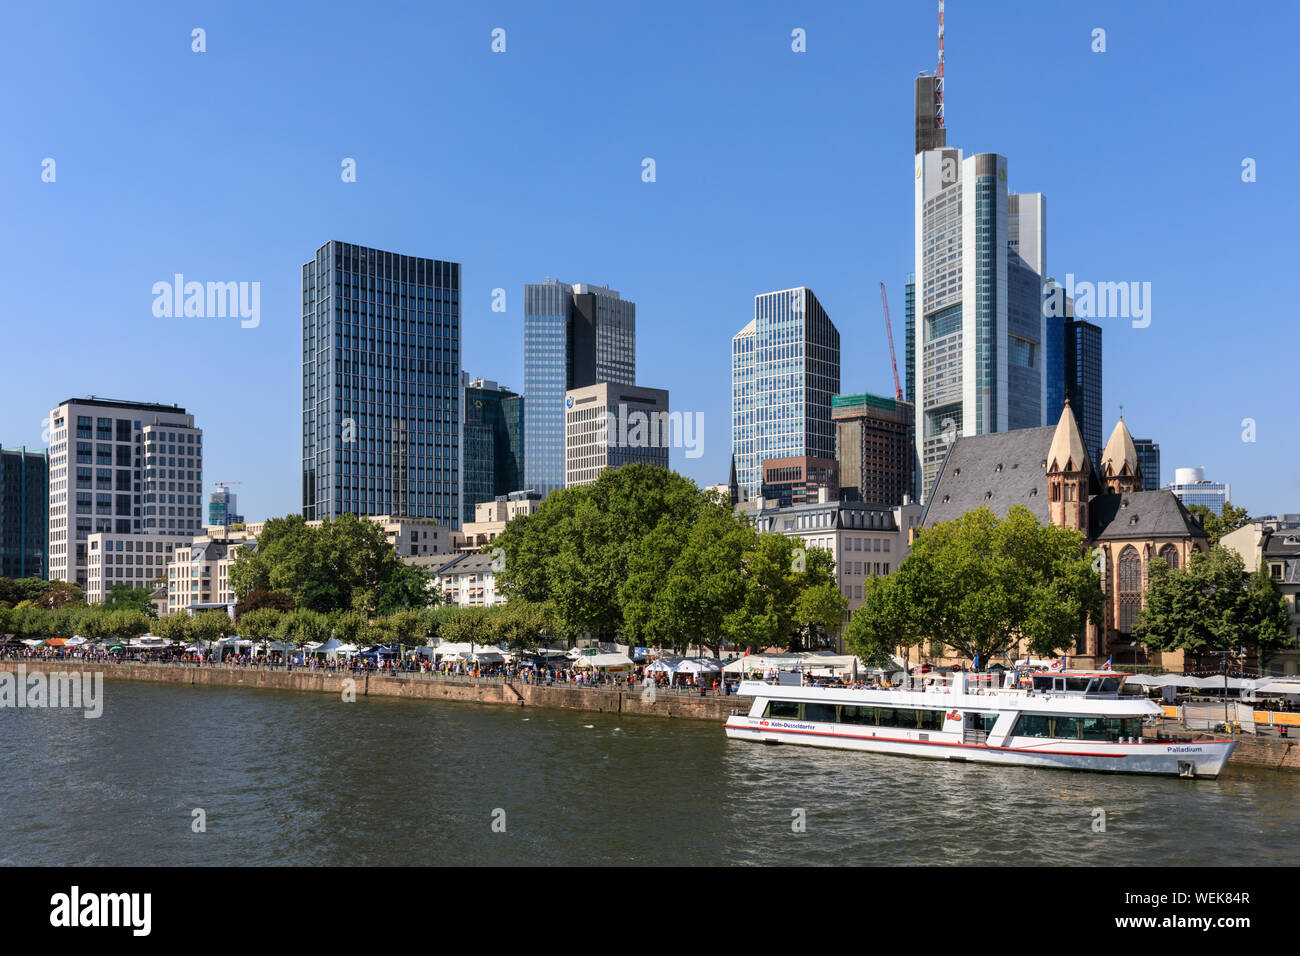 The Frankfurt Guide What To See Where To Eat Drink Party And